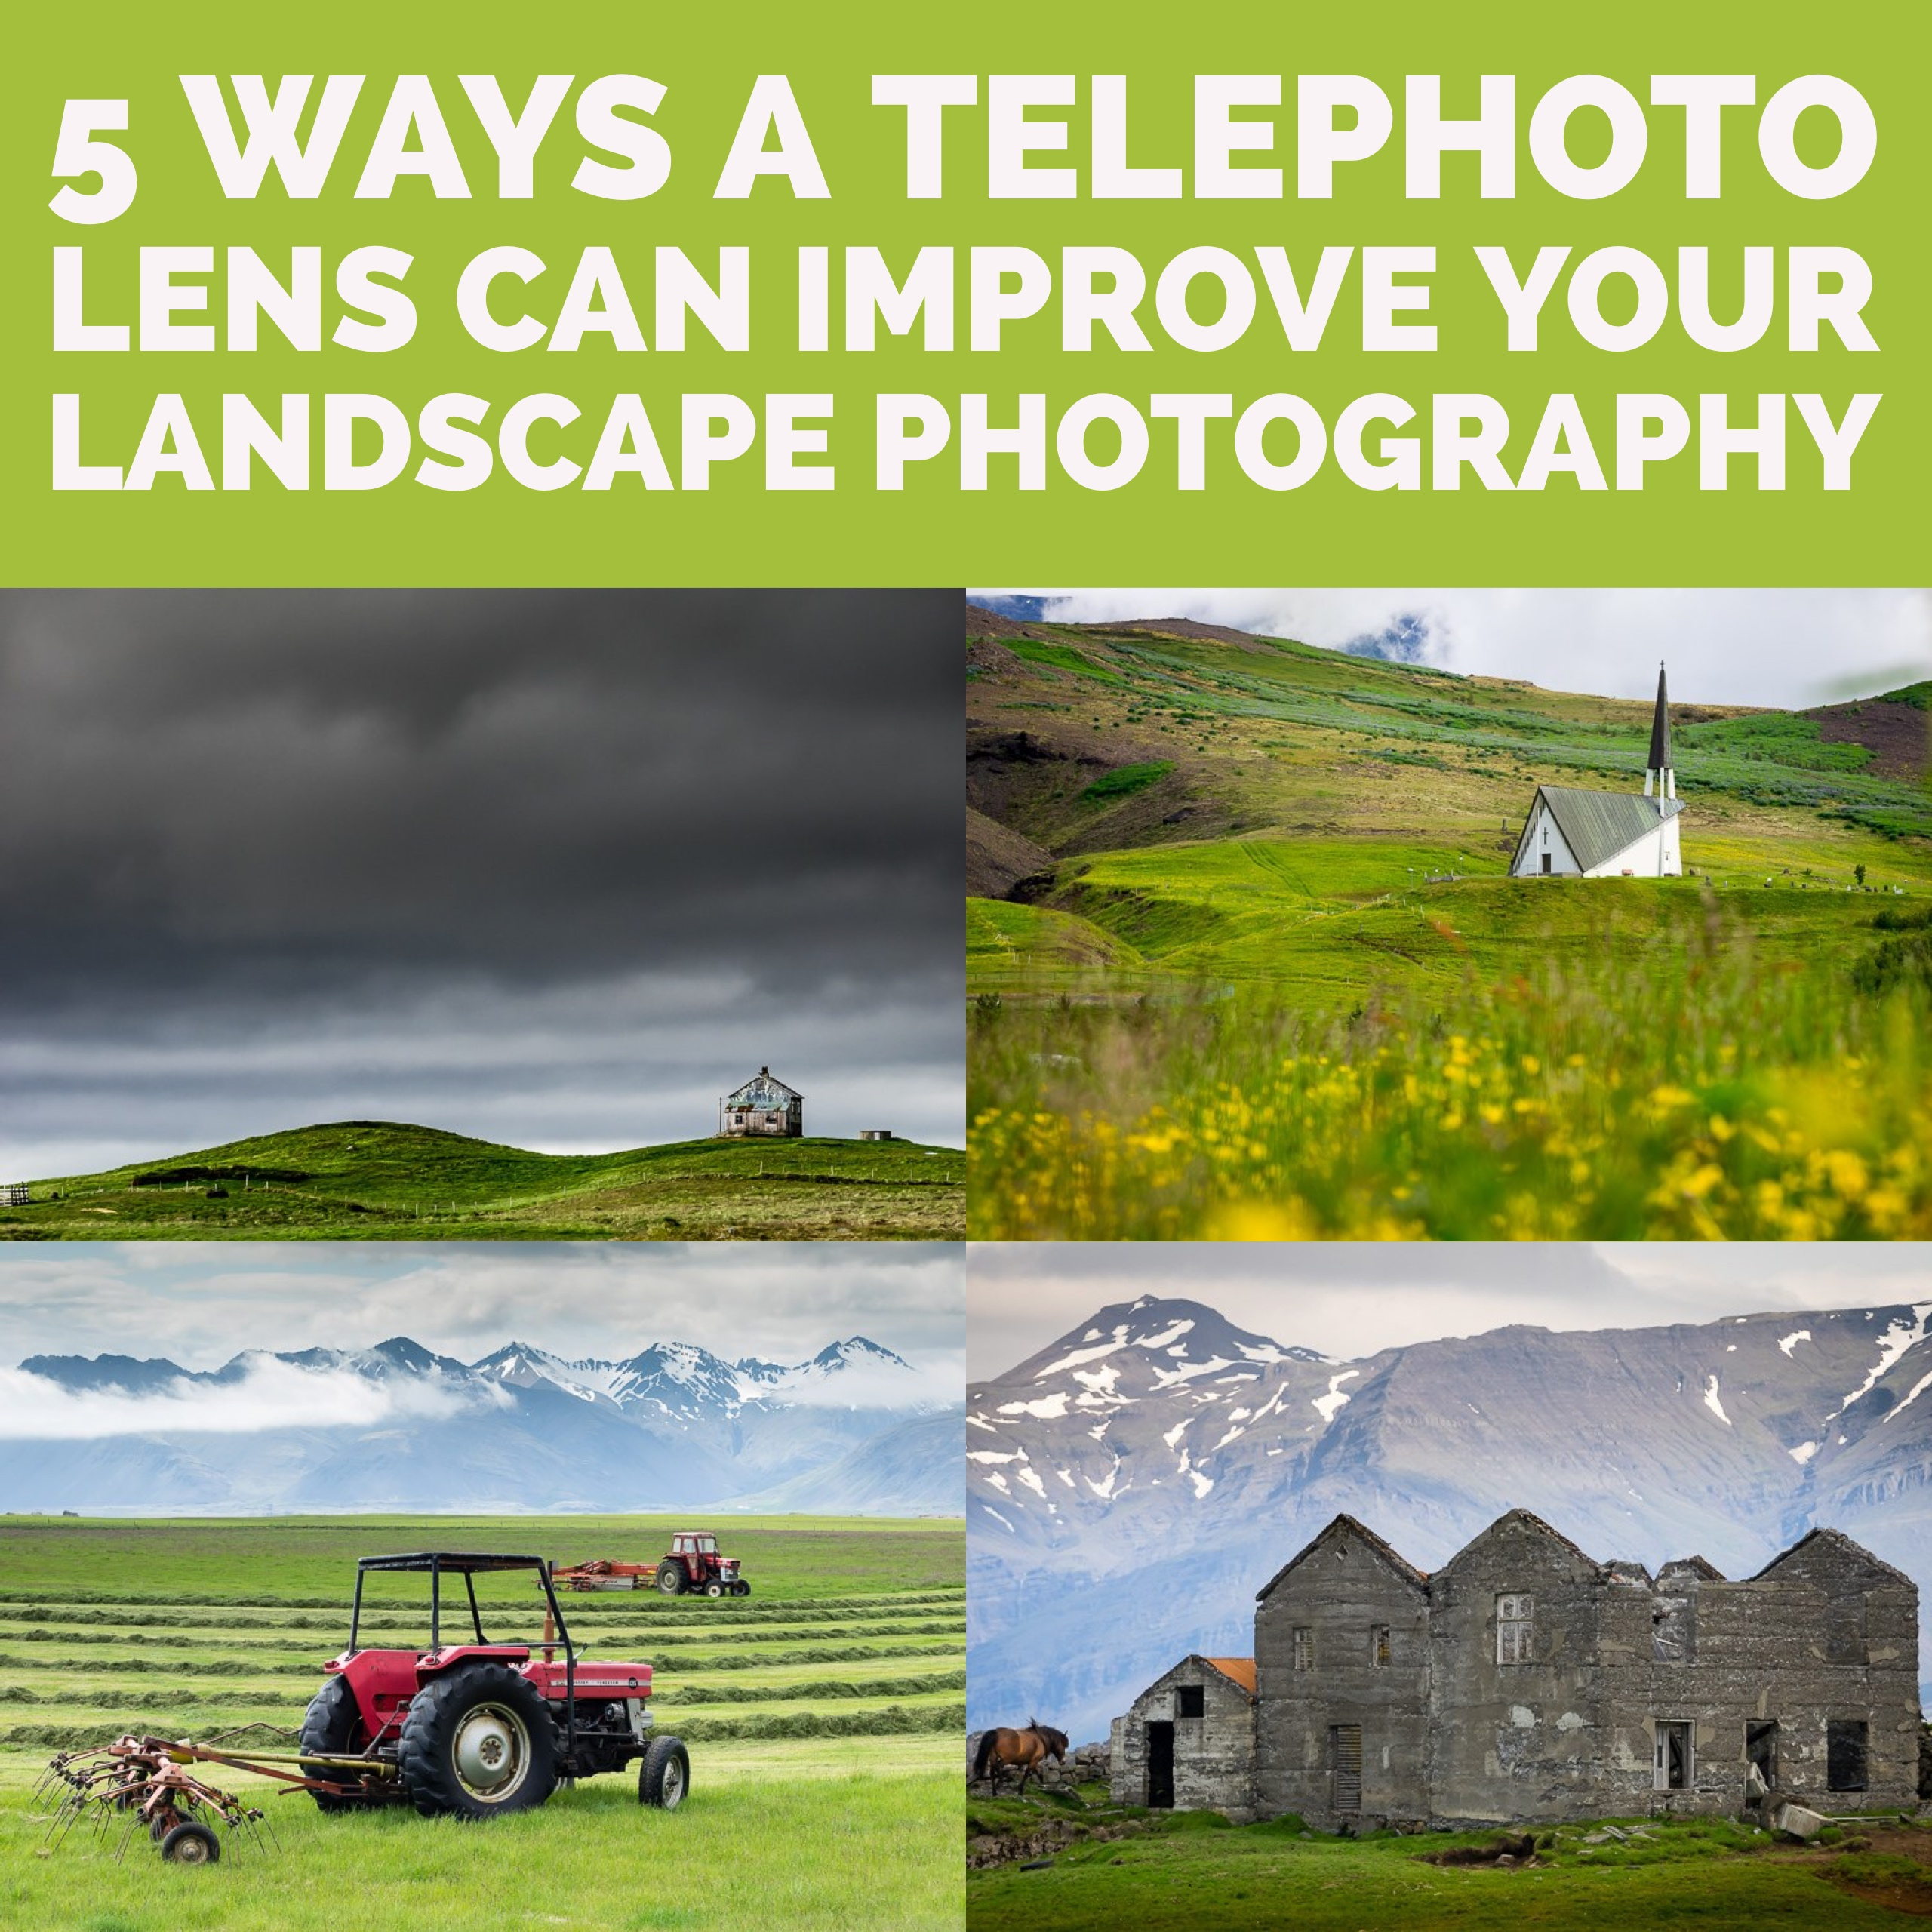 5 Ways a Telephoto Lens Can Improve Your Landscape Photography